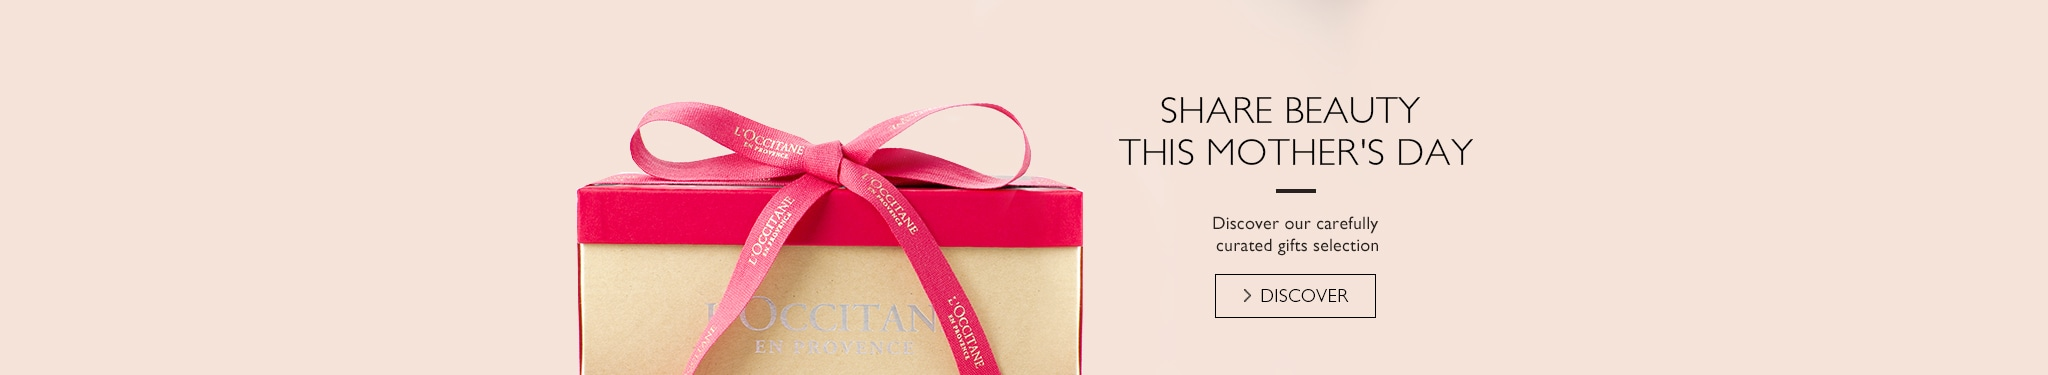 Share Beauty This Mother's Day